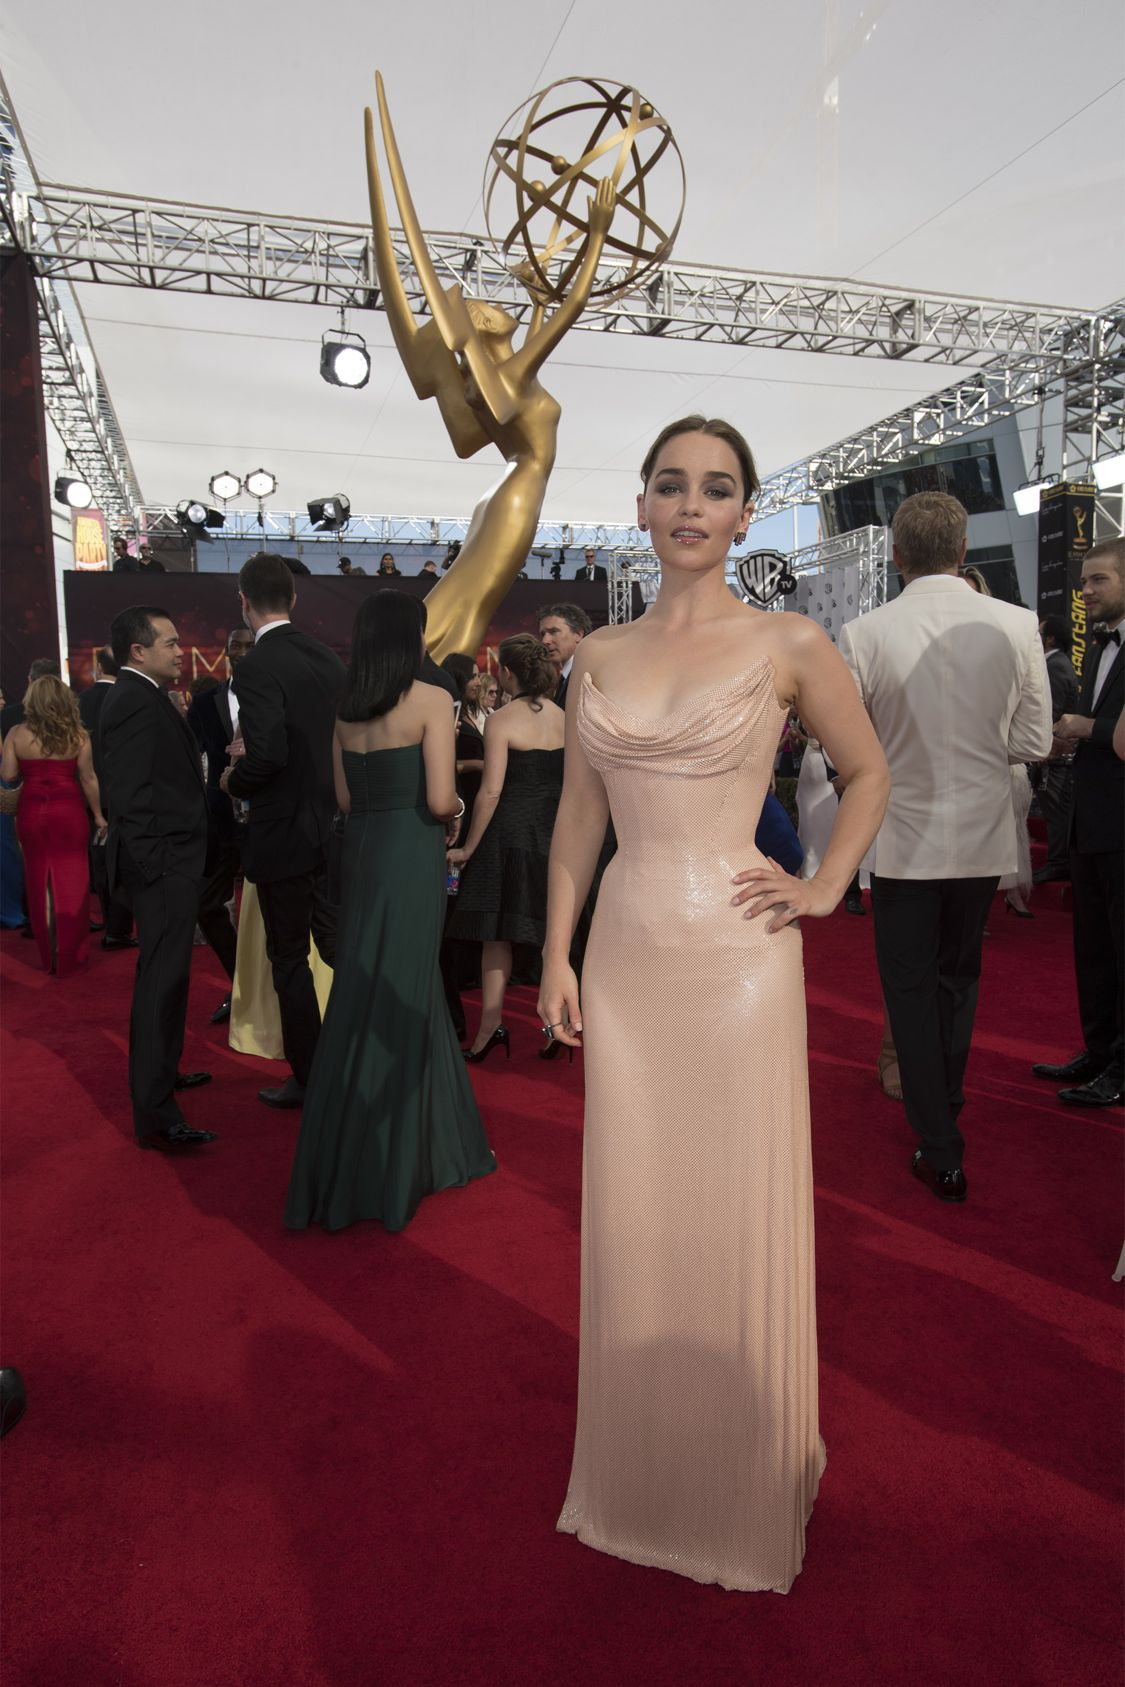 """THE 68TH EMMY(r) AWARDS - """"The 68th Emmy Awards"""" broadcasts live from The Microsoft Theater in Los Angeles, Sunday, September 18 (7:00-11:00 p.m. EDT/4:00-8:00 p.m. PDT), on ABC and is hosted by Jimmy Kimmel. (ABC/Image Group LA) EMILIA CLARKE"""